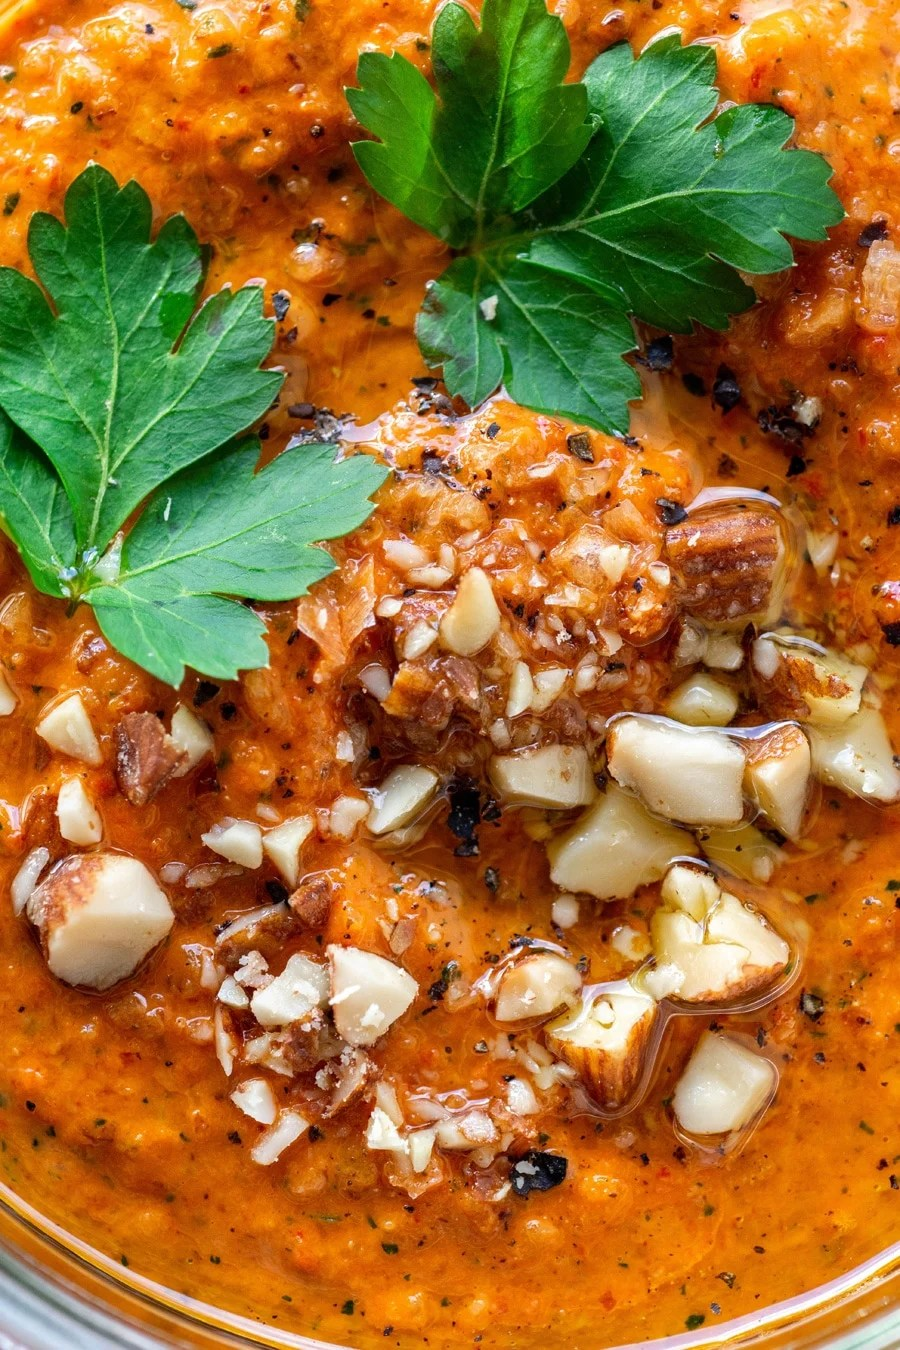 A close up view of bright orange romesco sauce topped with parsley leaves, chopped almonds, and black pepper